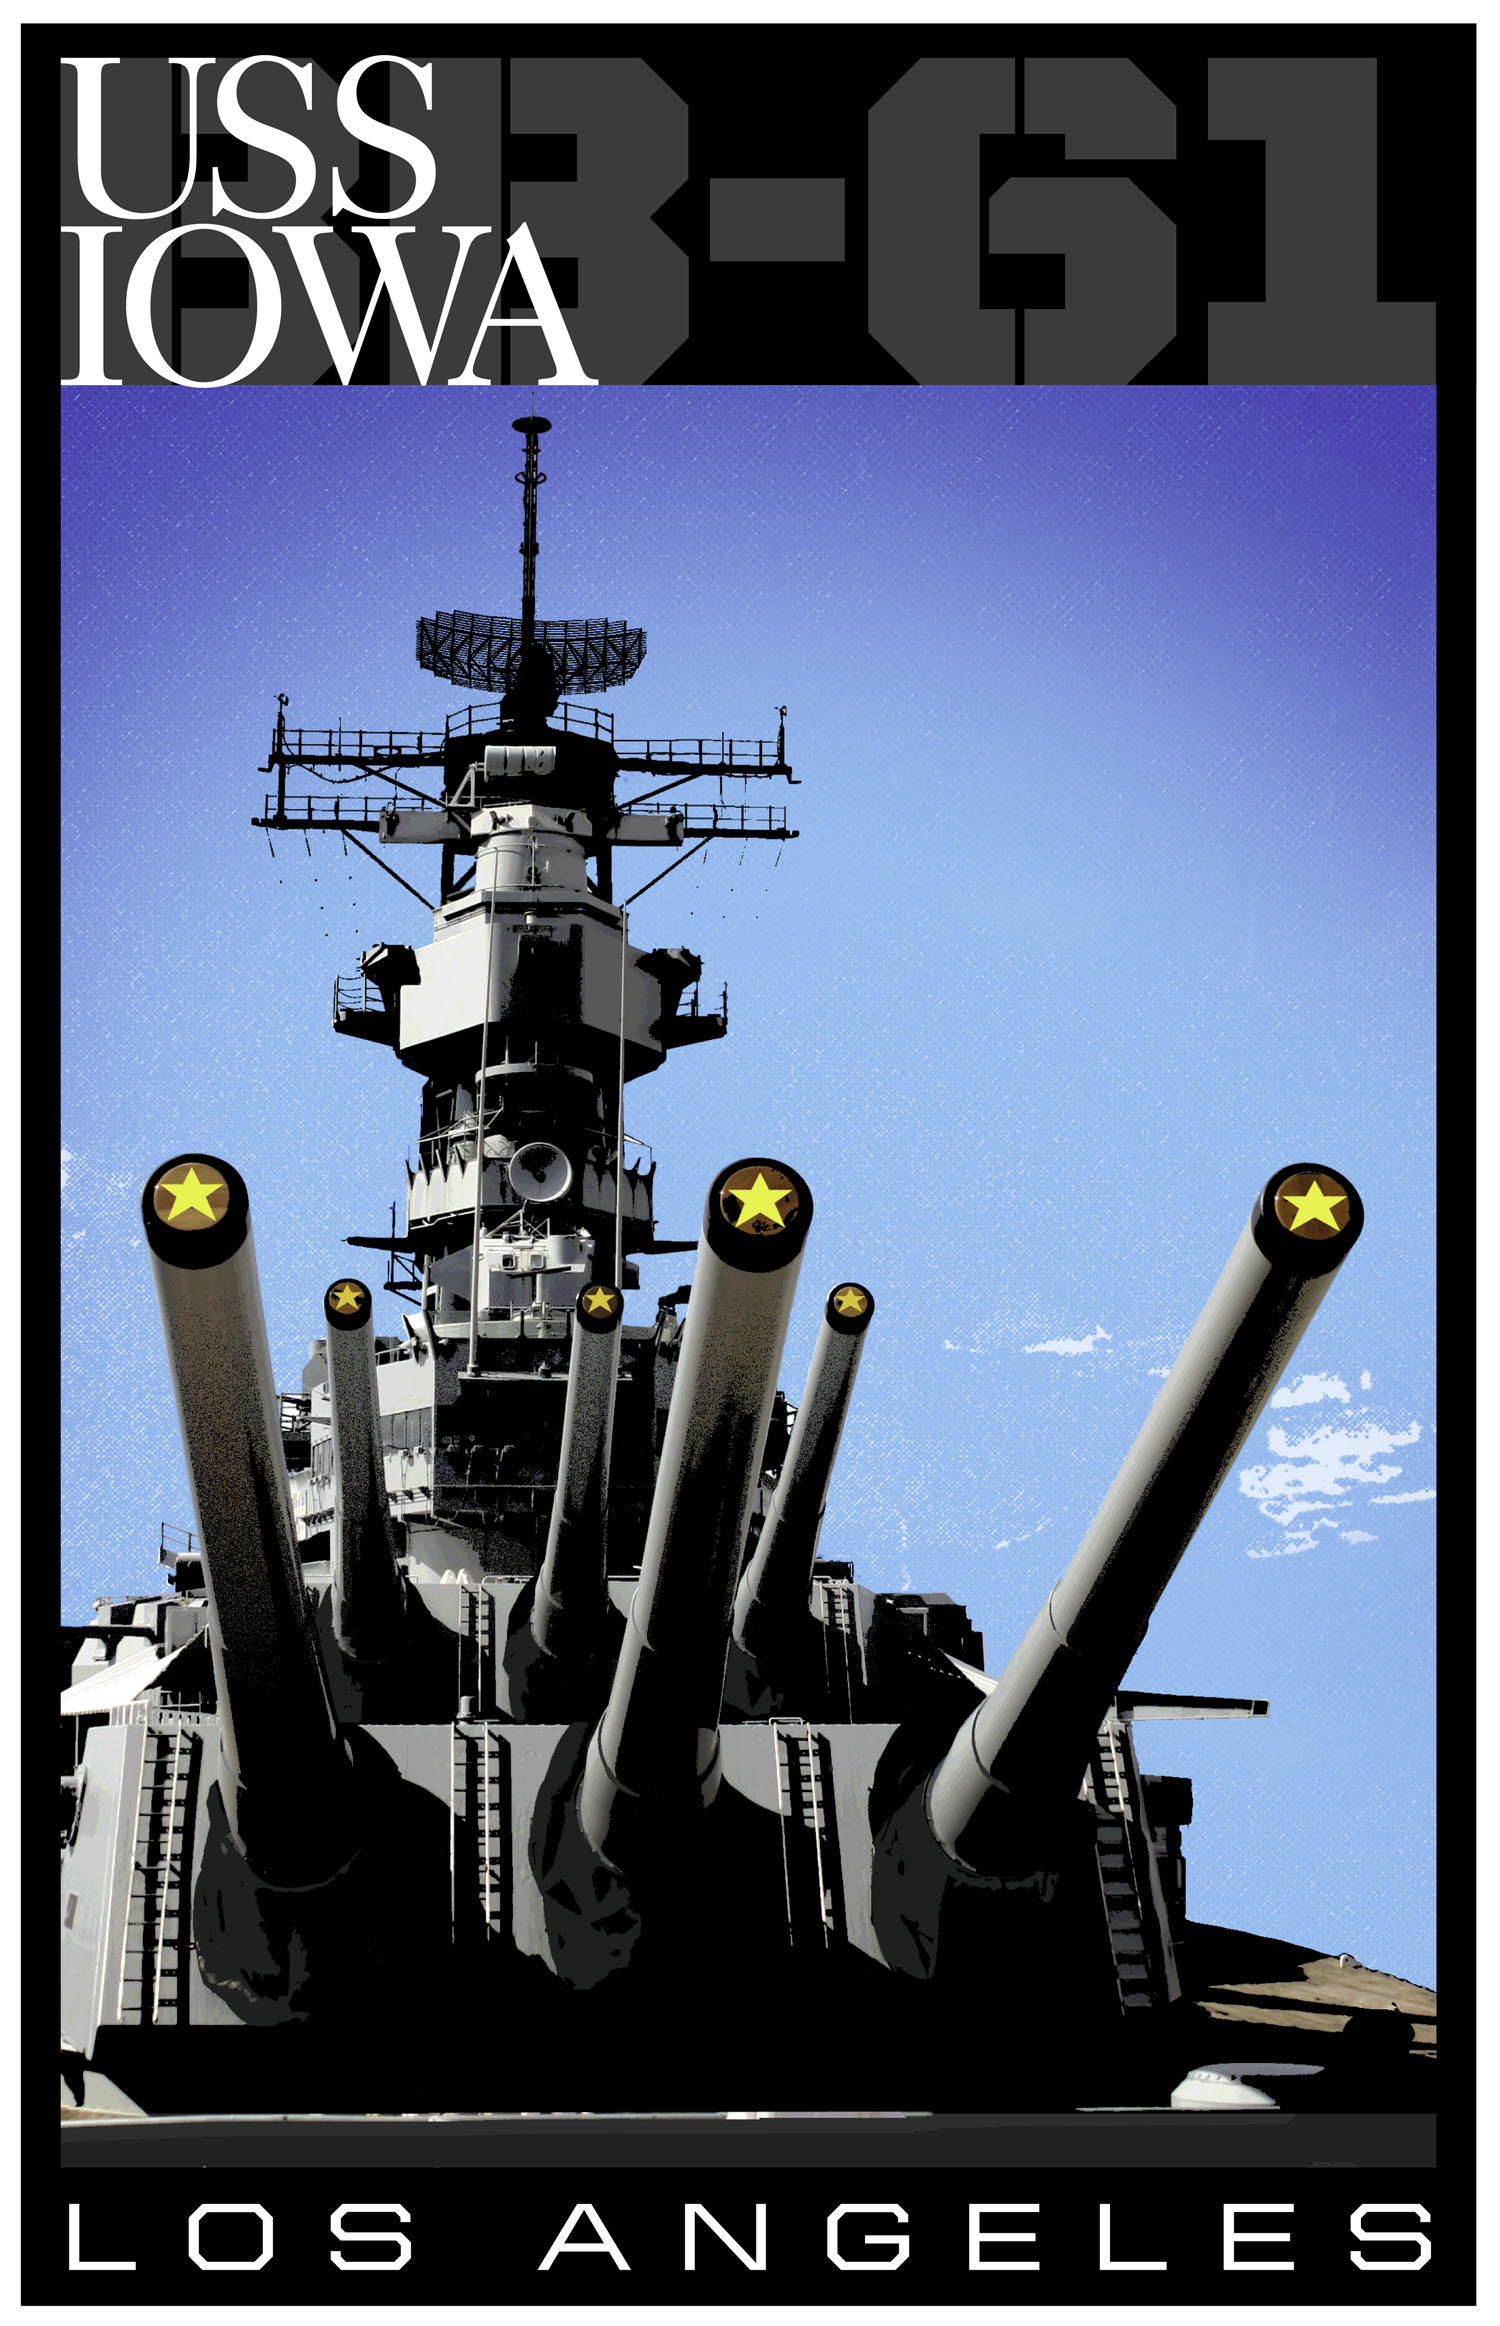 ussiowa logo high res.jpg